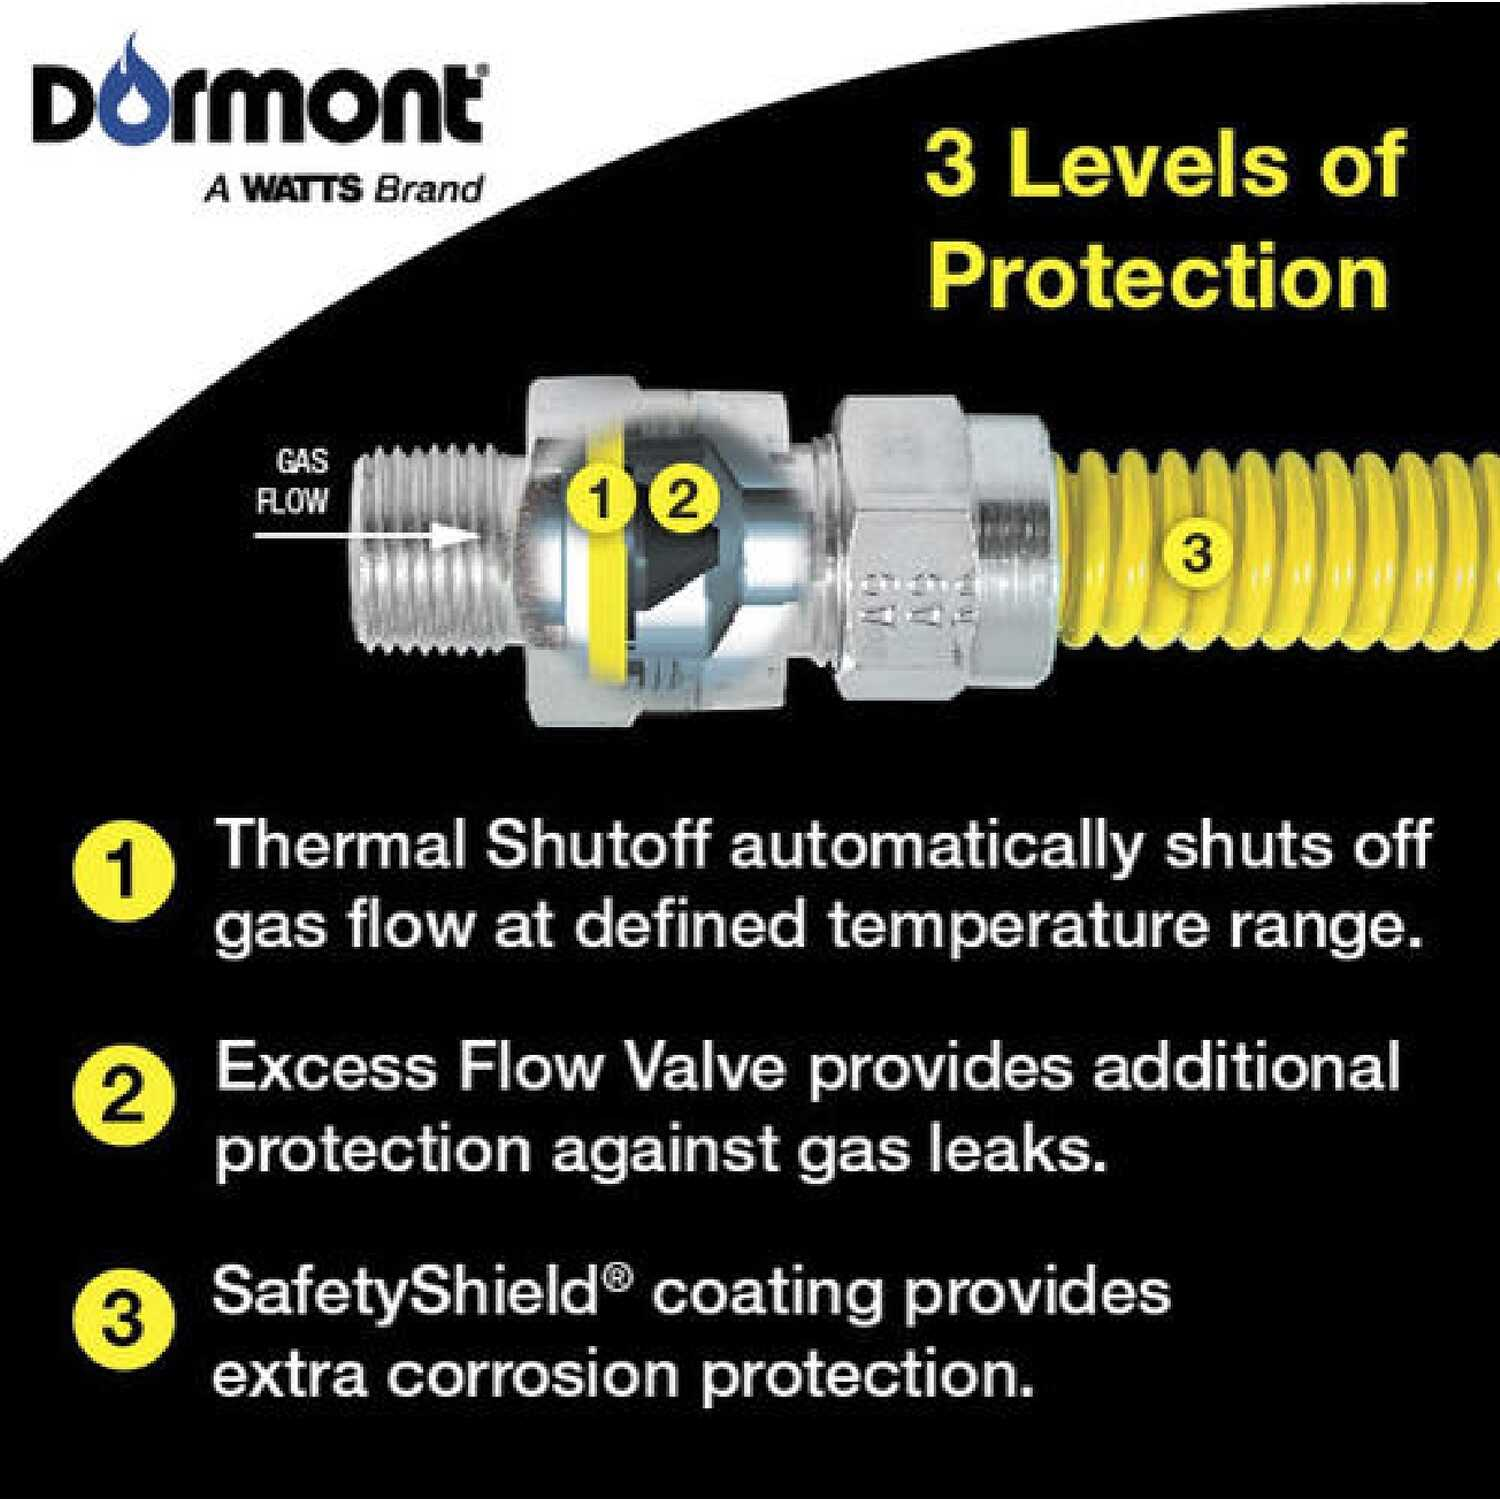 Dormont  SmartSense  1/2 in. Dia. x 60 in. L x 1/2 in. Dia. OD  Stainless Steel  Gas Appliance Conne